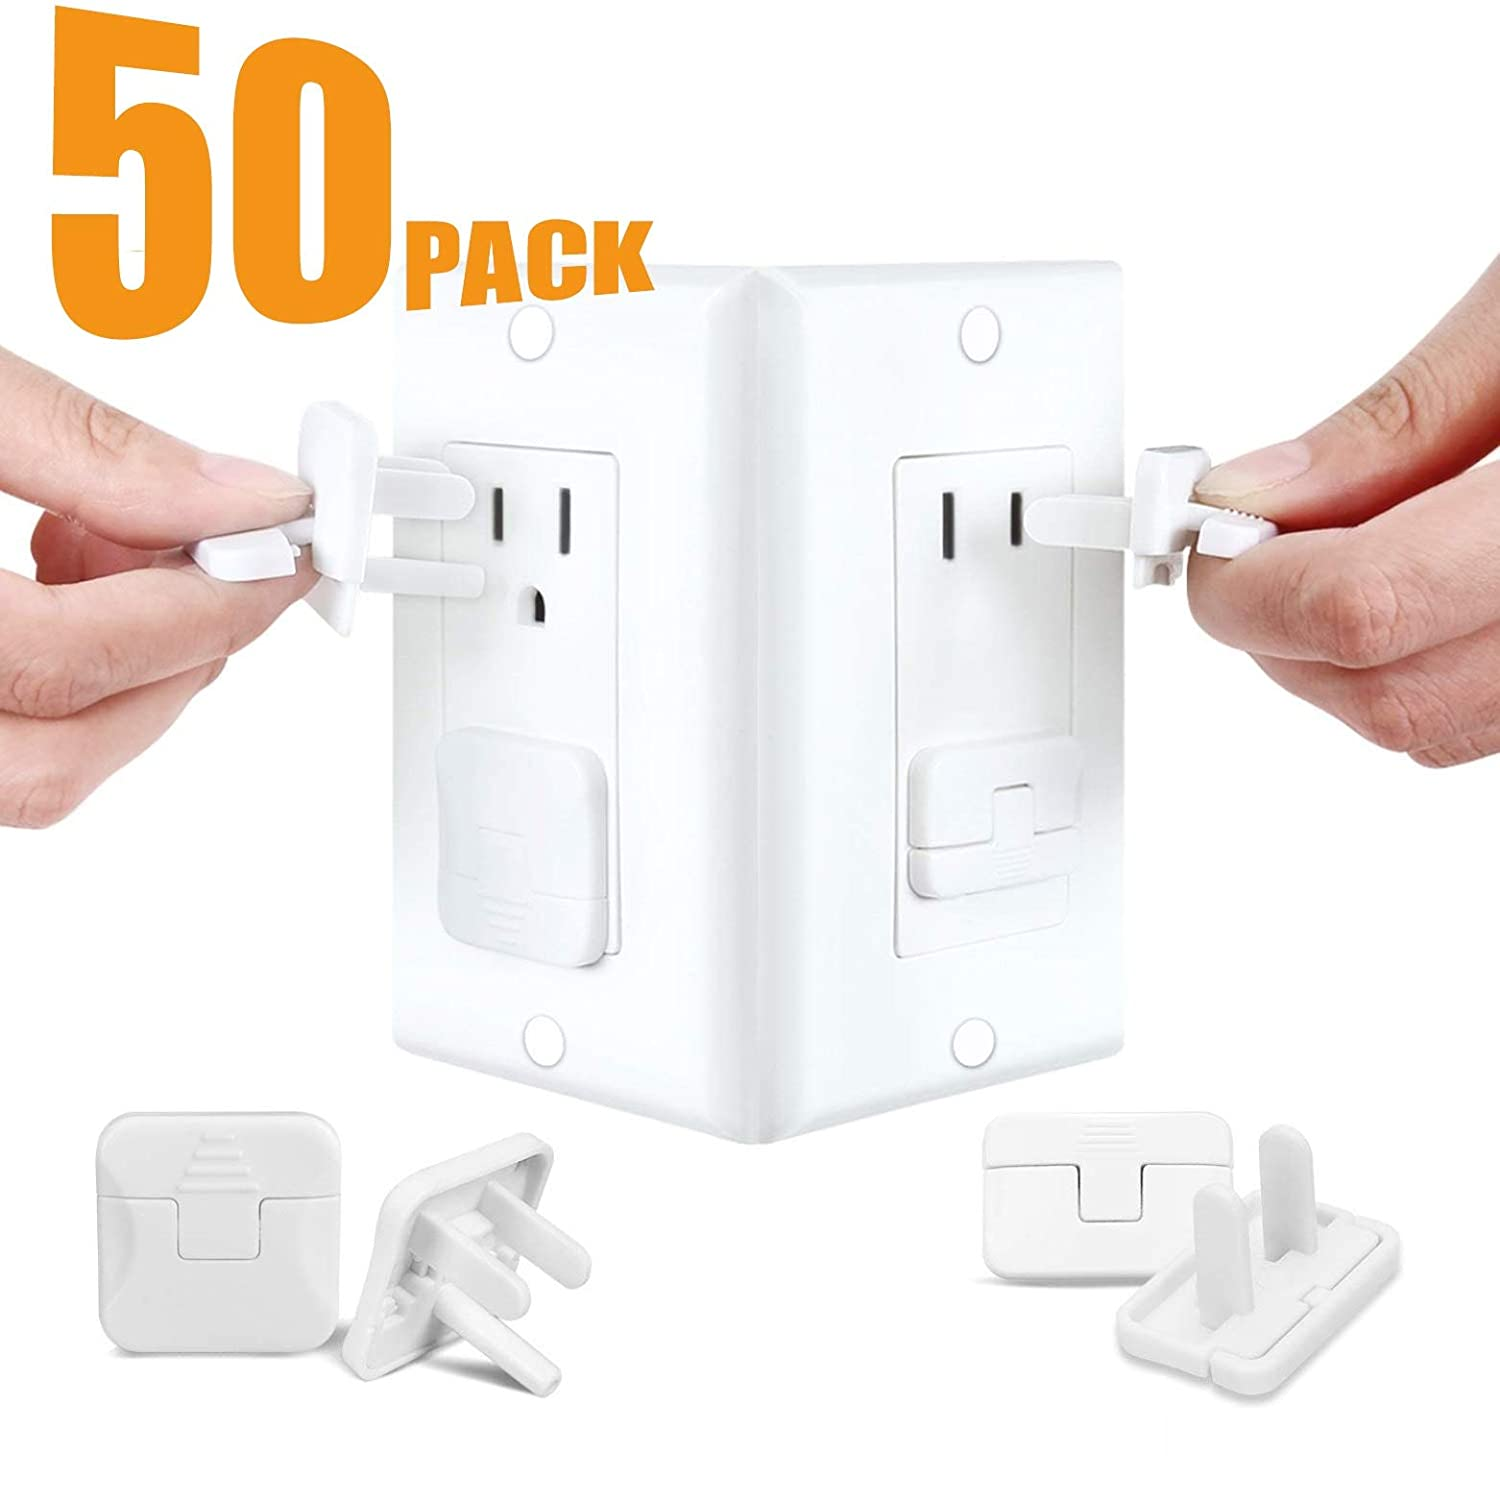 Babepai Outlet Plugs Covers Baby Proofing Electrical Child Protector Safety Caps Wall Plug Socket Covers for US 3-Prong and 2-Prong Durable Accidental Shock Hazard Prevention Guards 50 Pack White